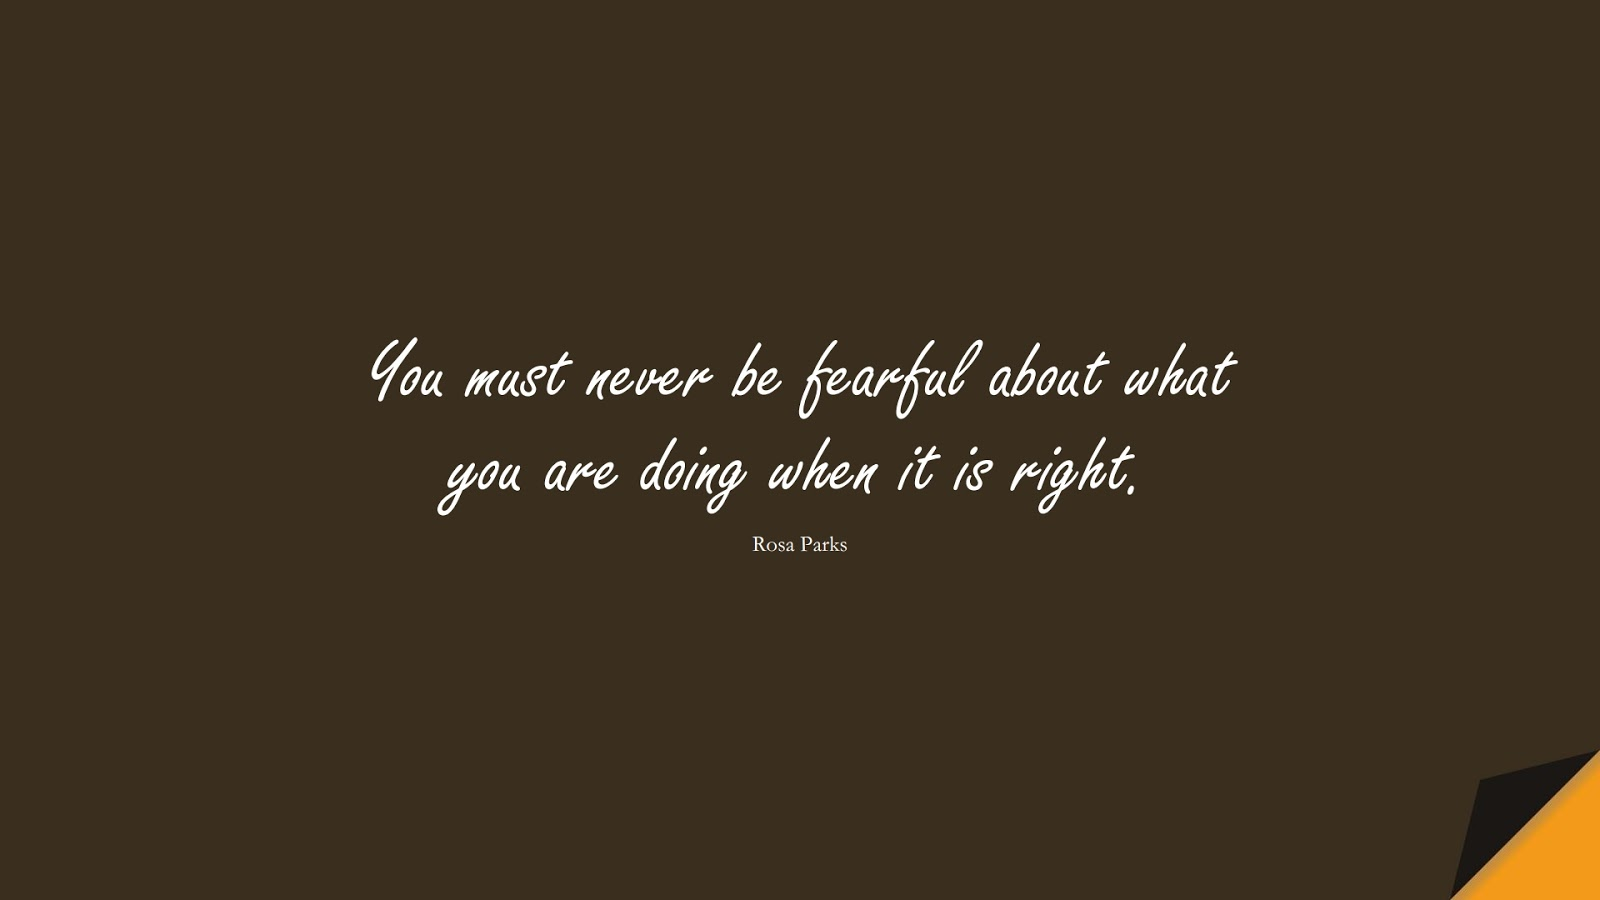 You must never be fearful about what you are doing when it is right. (Rosa Parks);  #FamousQuotes